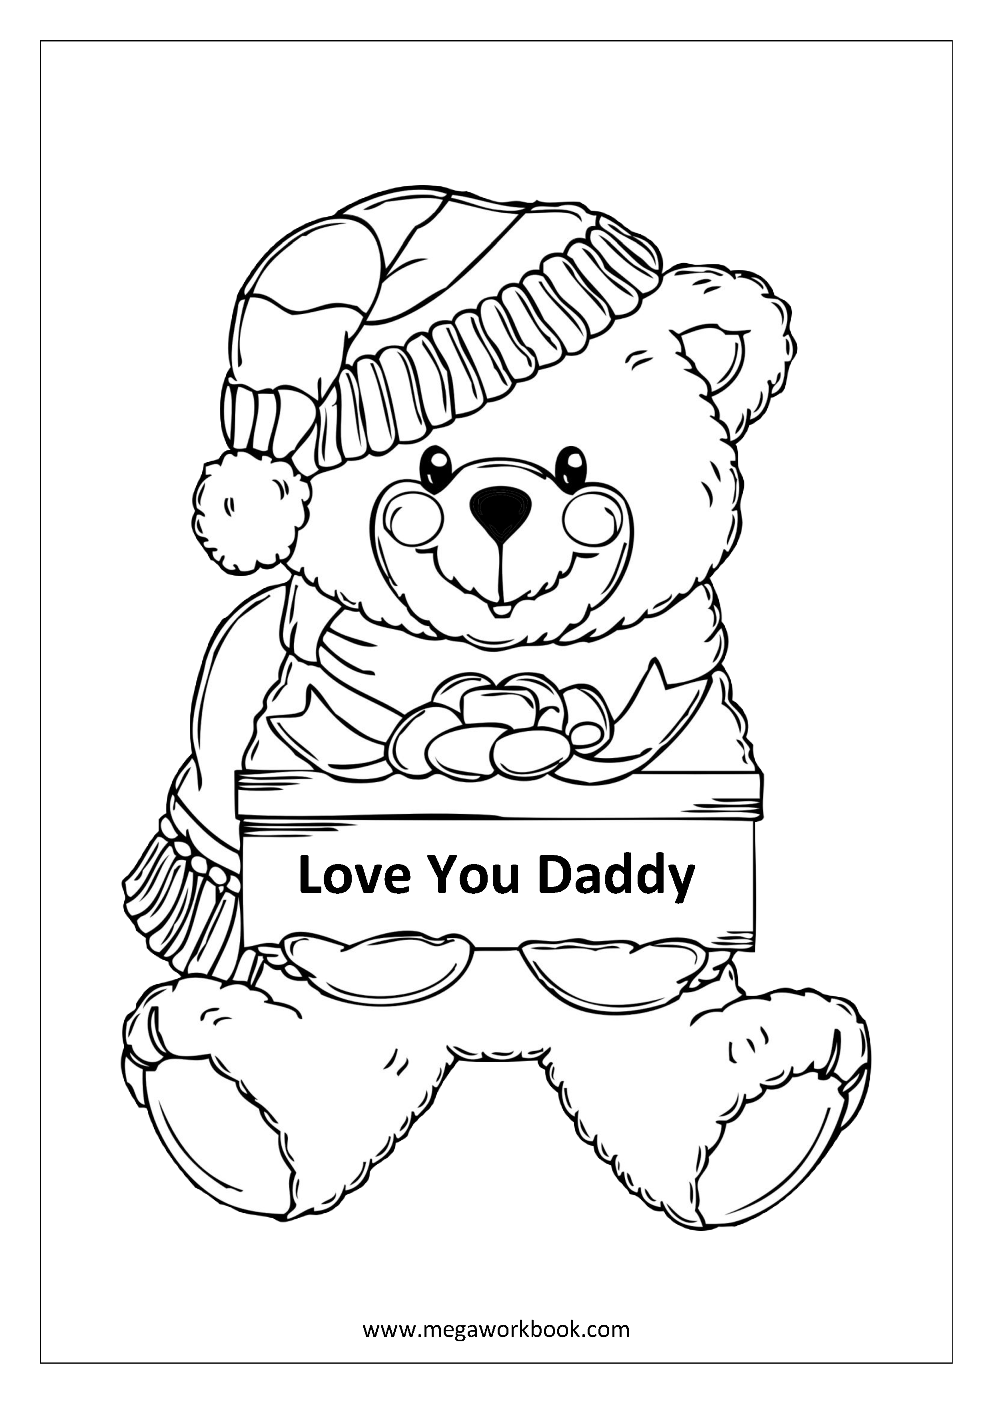 image I love you daddy i know you love me to